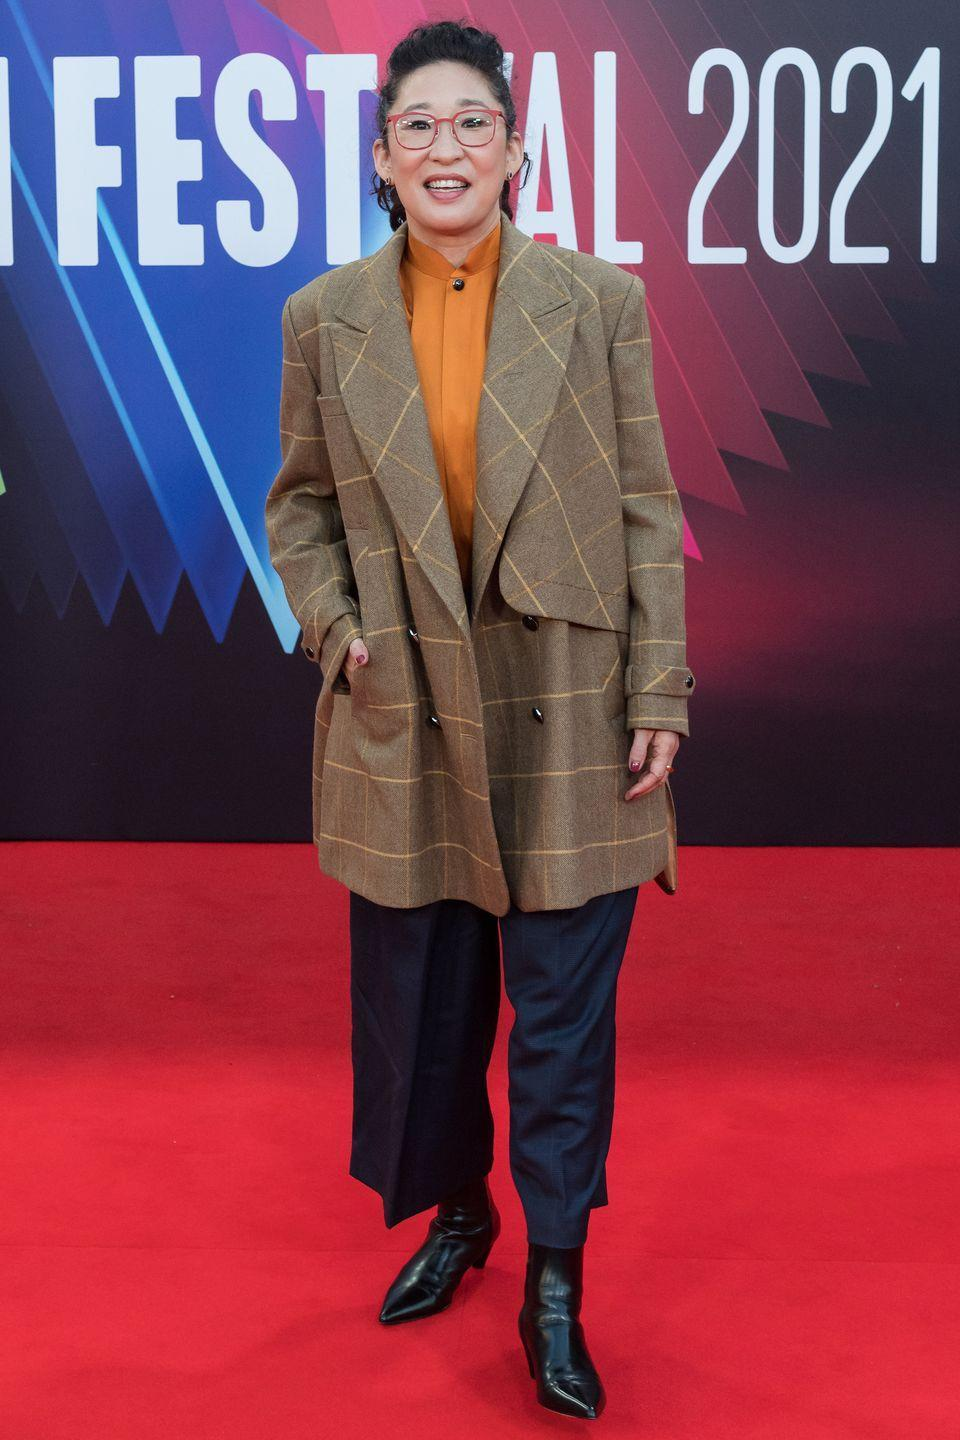 <p><strong>10 October</strong></p><p>Sandra Oh attended the premiere of The French Dispatch at the film festival, wearing a checked jacket and wide-leg trousers.</p>